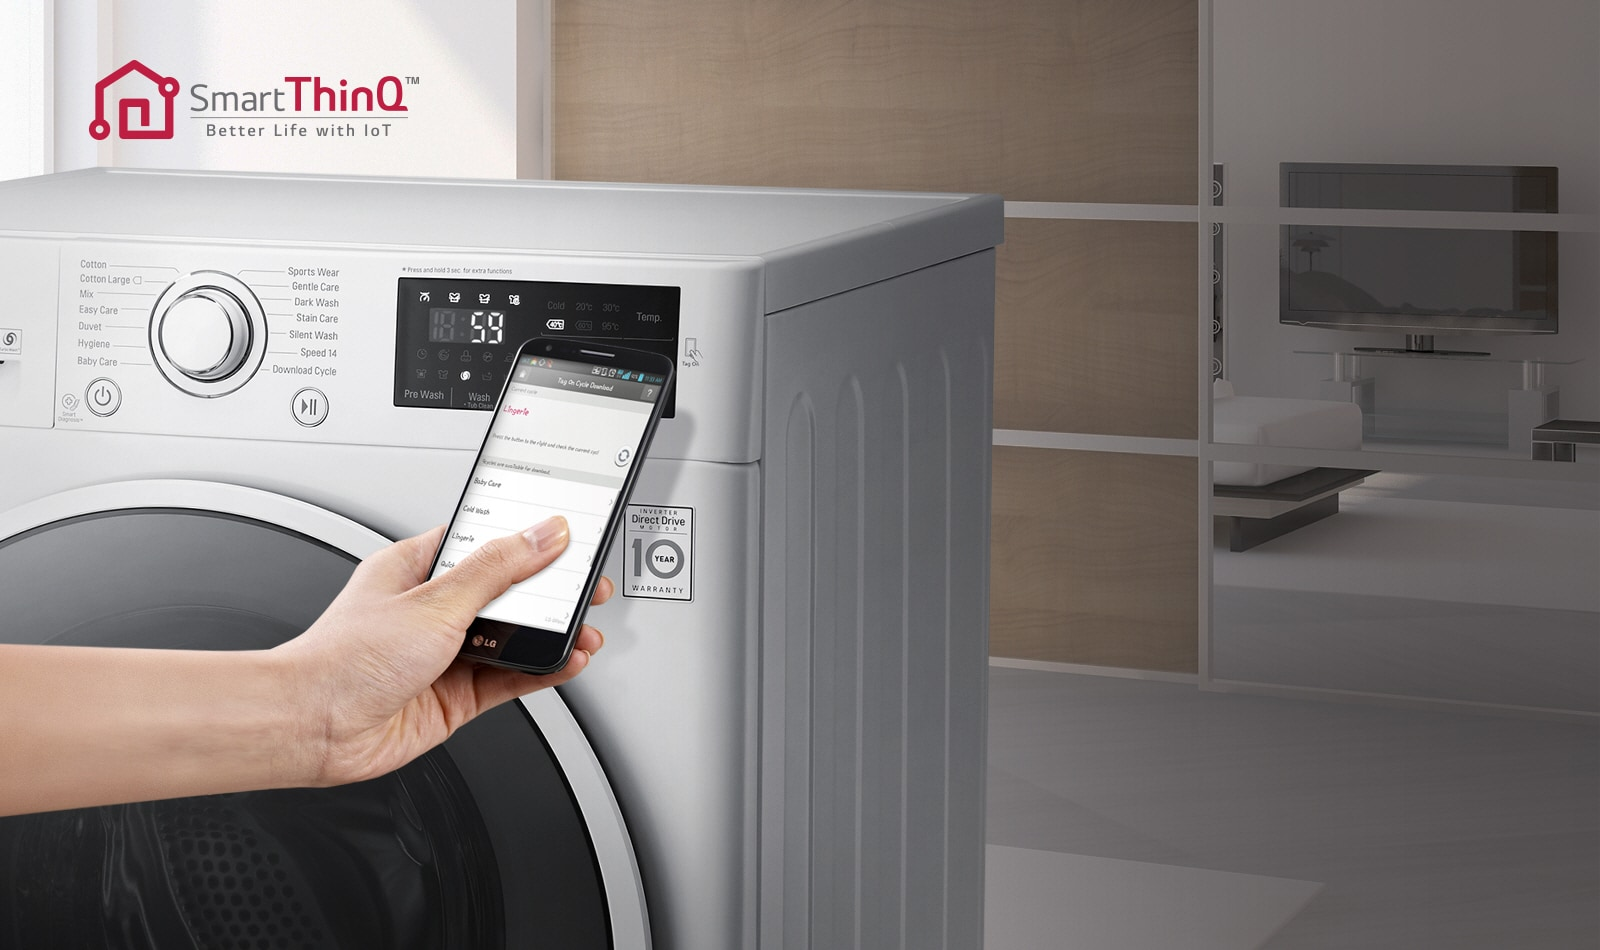 Smart Convenience with NFC3